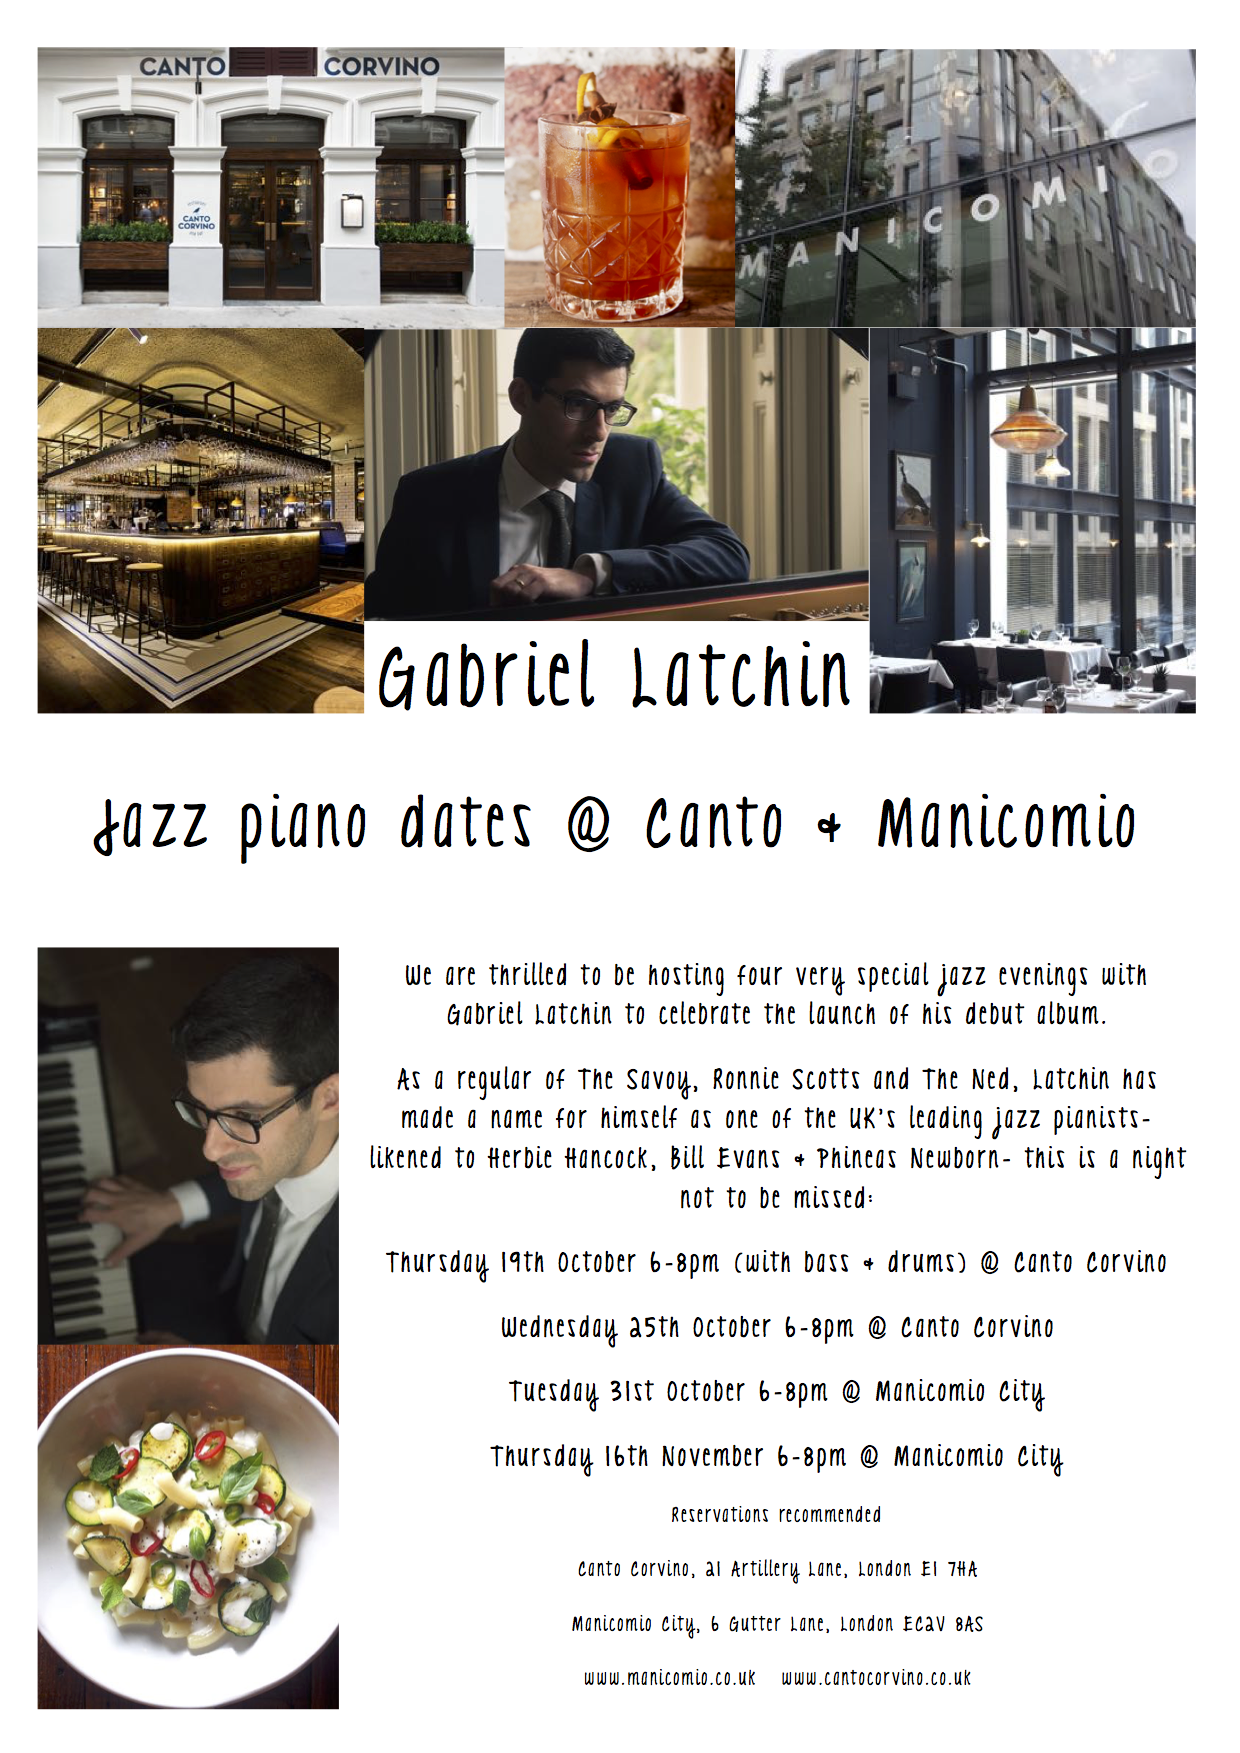 Gabriel Latchin Canto and Malfatti ad 051017 copy2 pdf.png